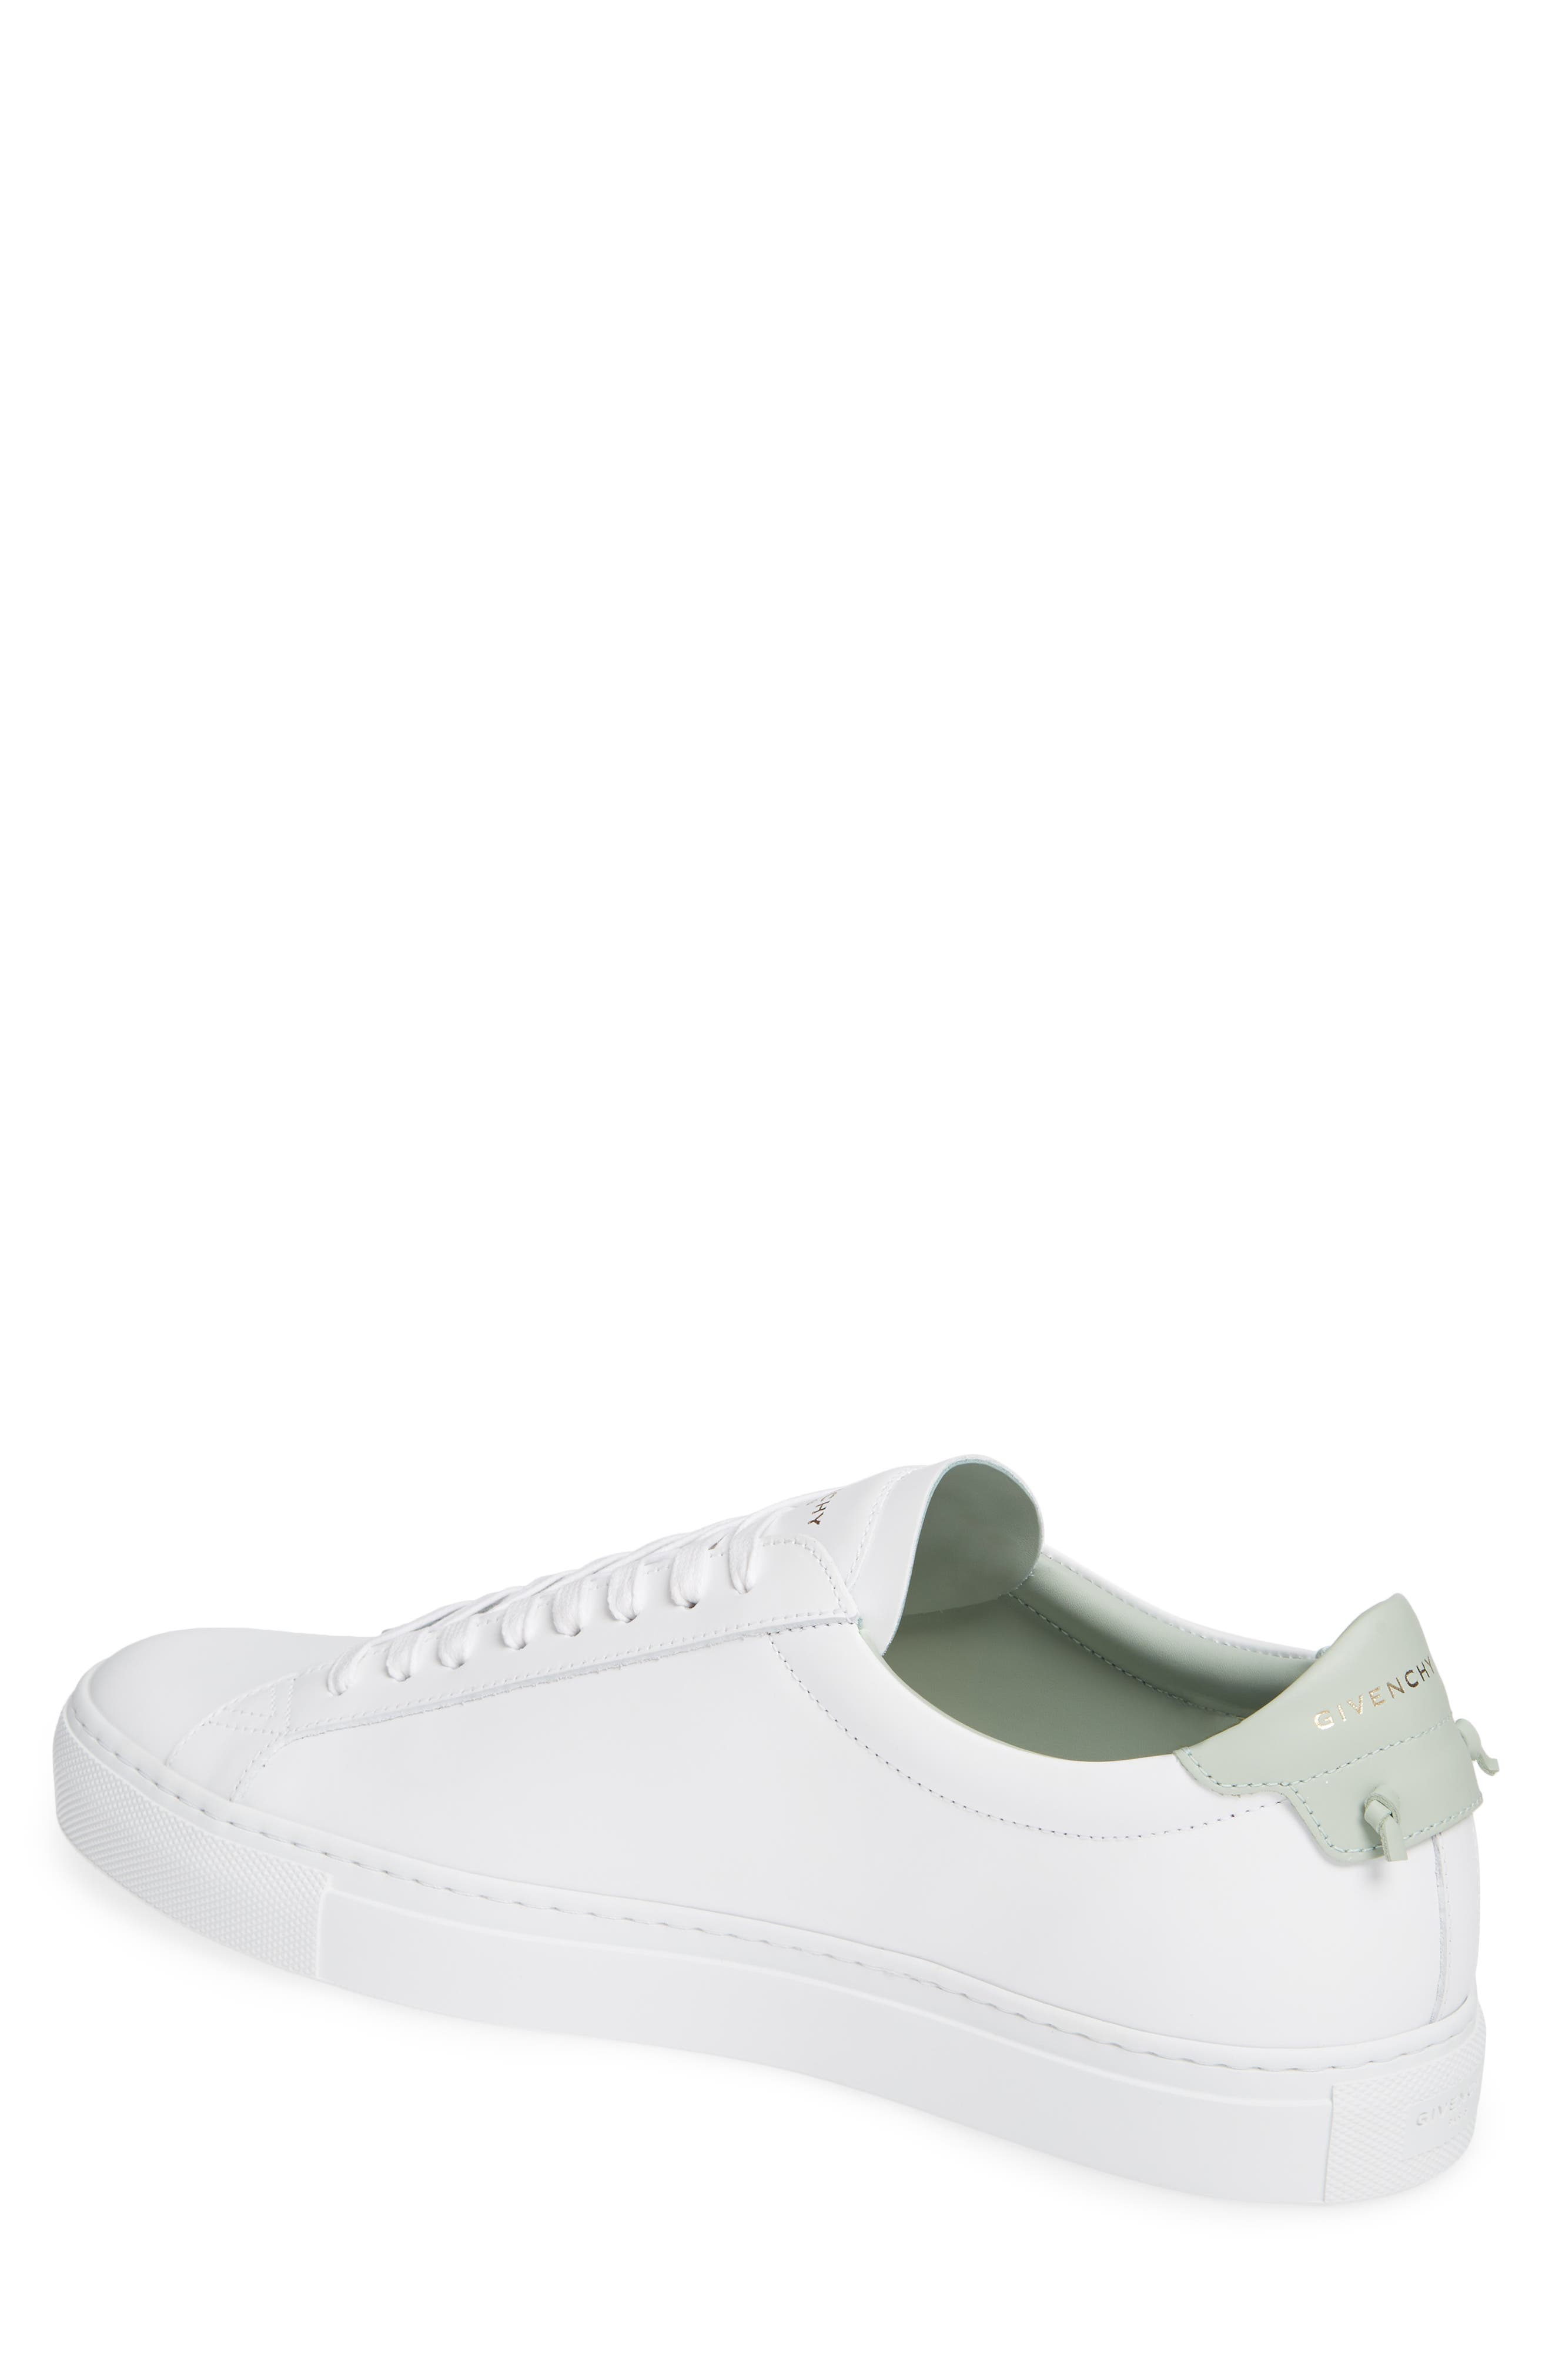 'Urban Knots Lo' Sneaker,                             Alternate thumbnail 2, color,                             WHITE/ GREEN